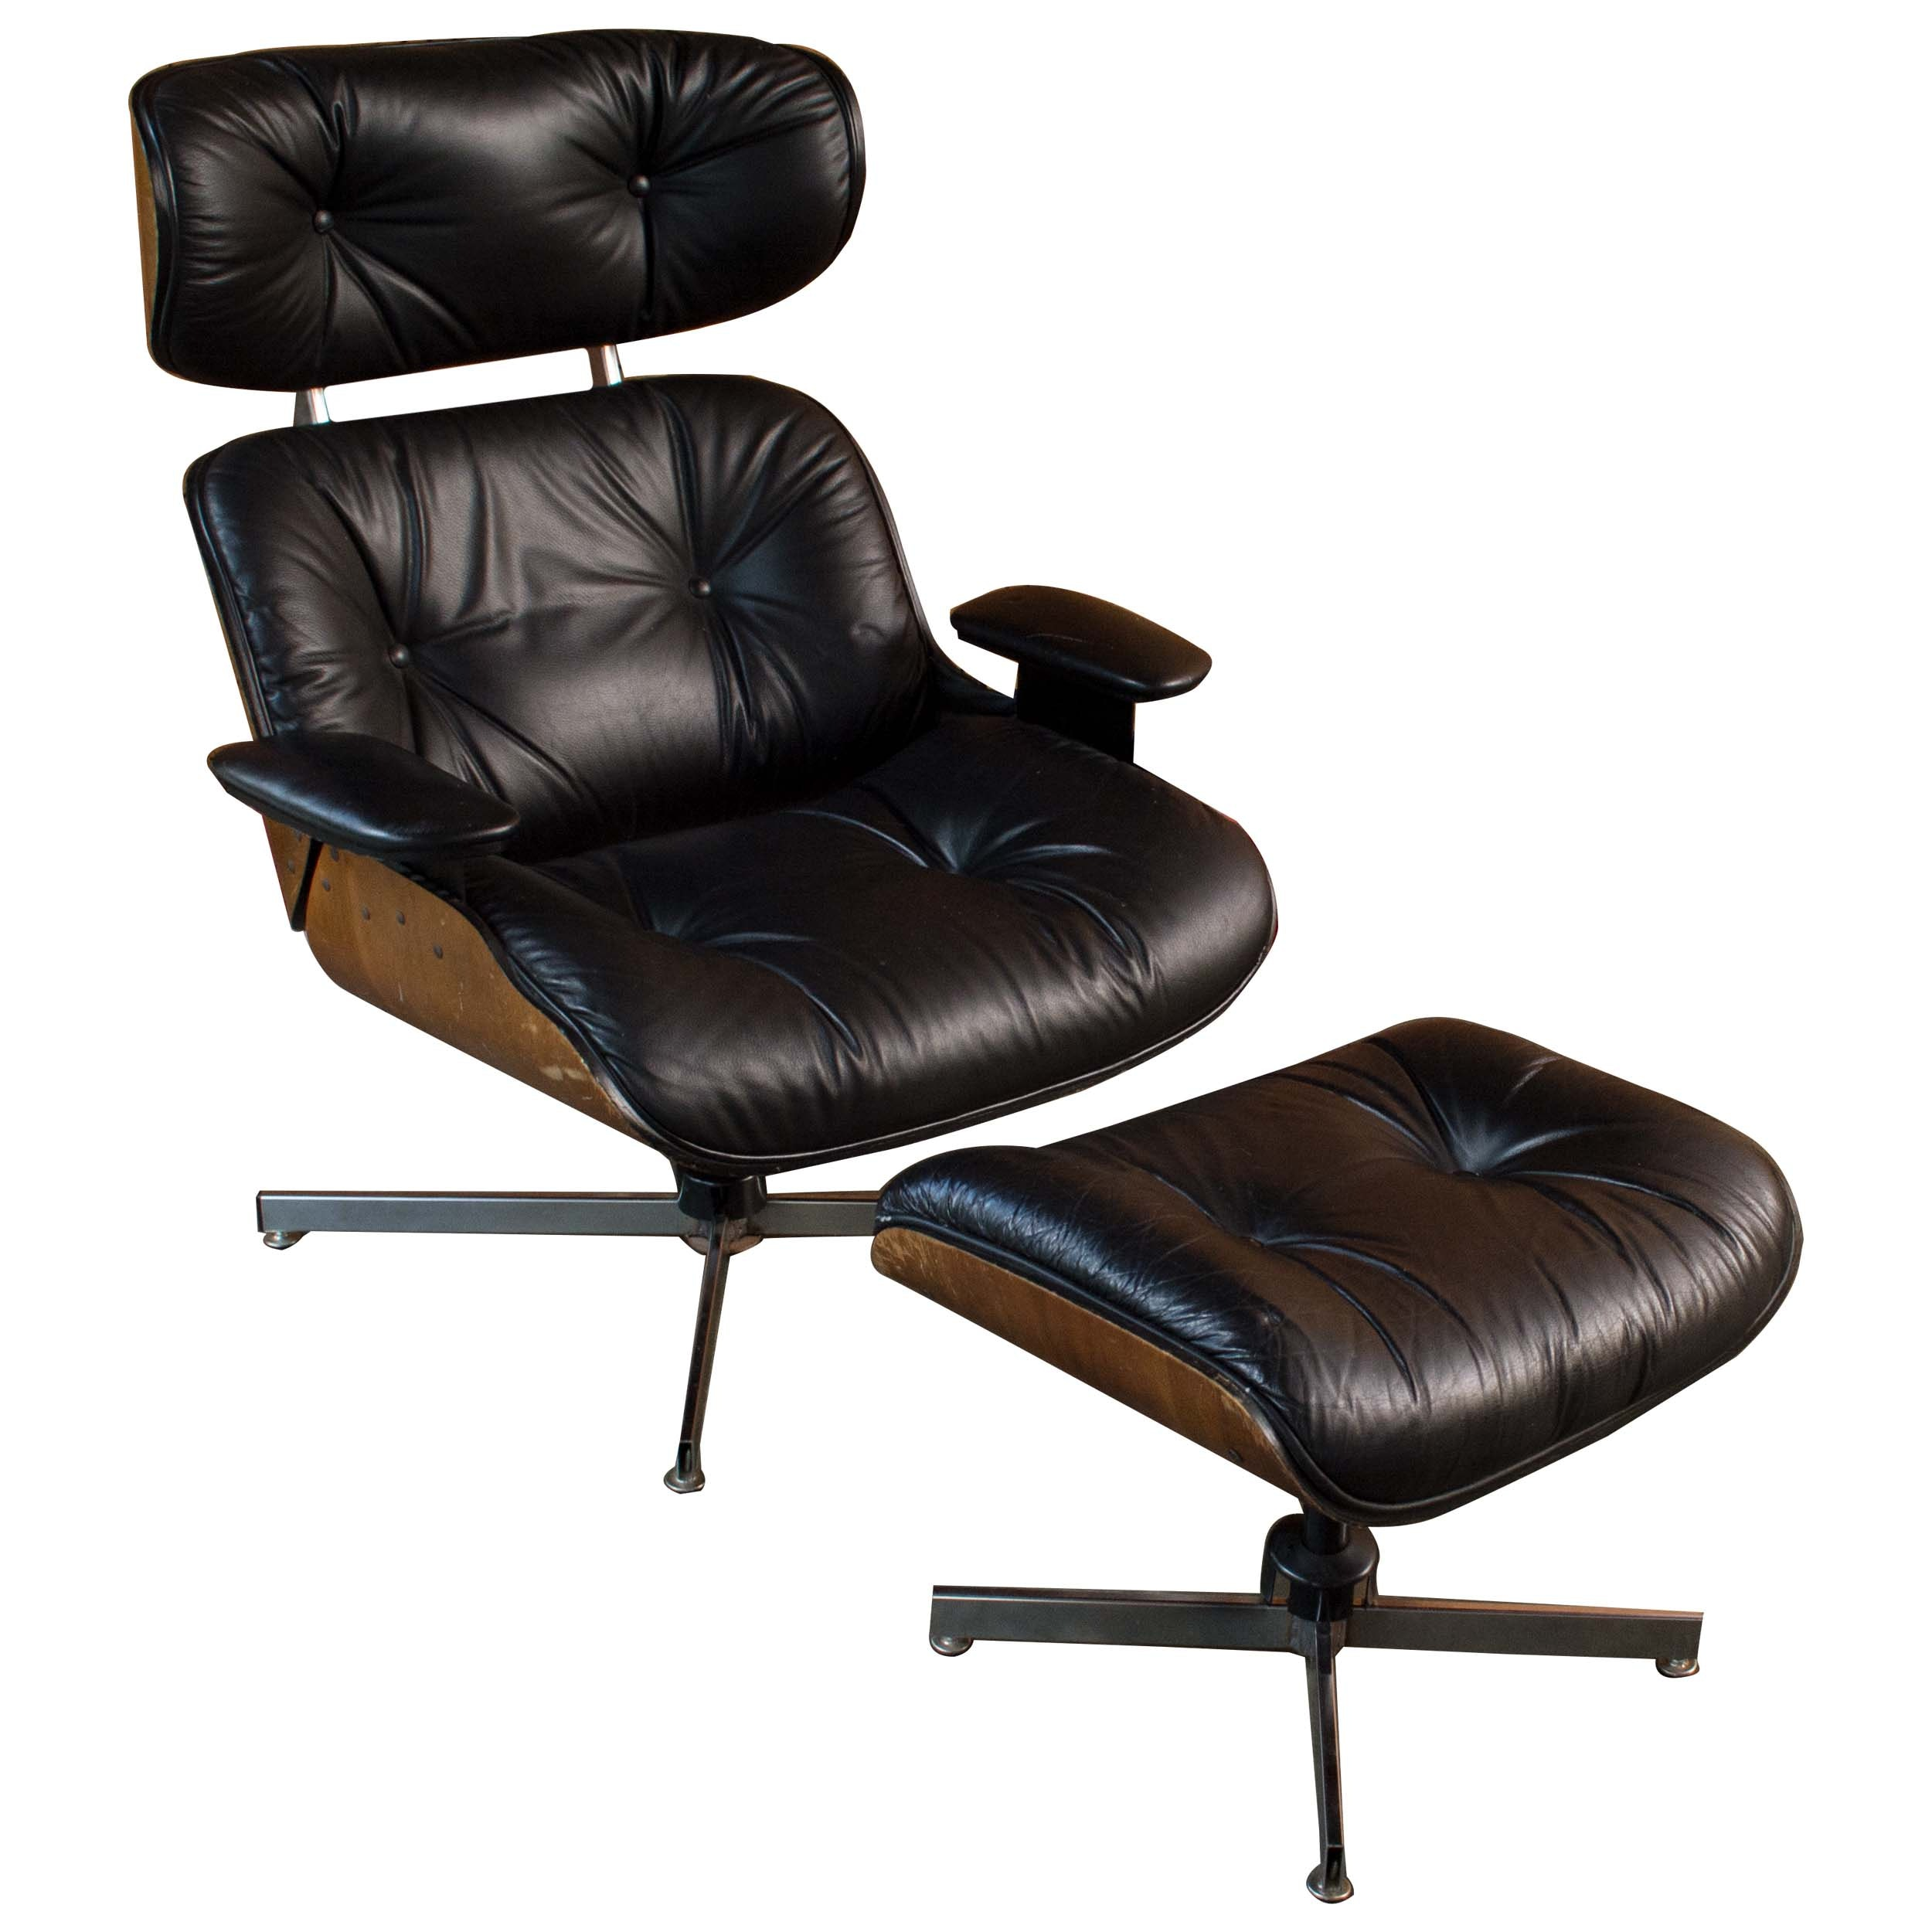 Mid Century Modern Eames Style Chair with Ottoman